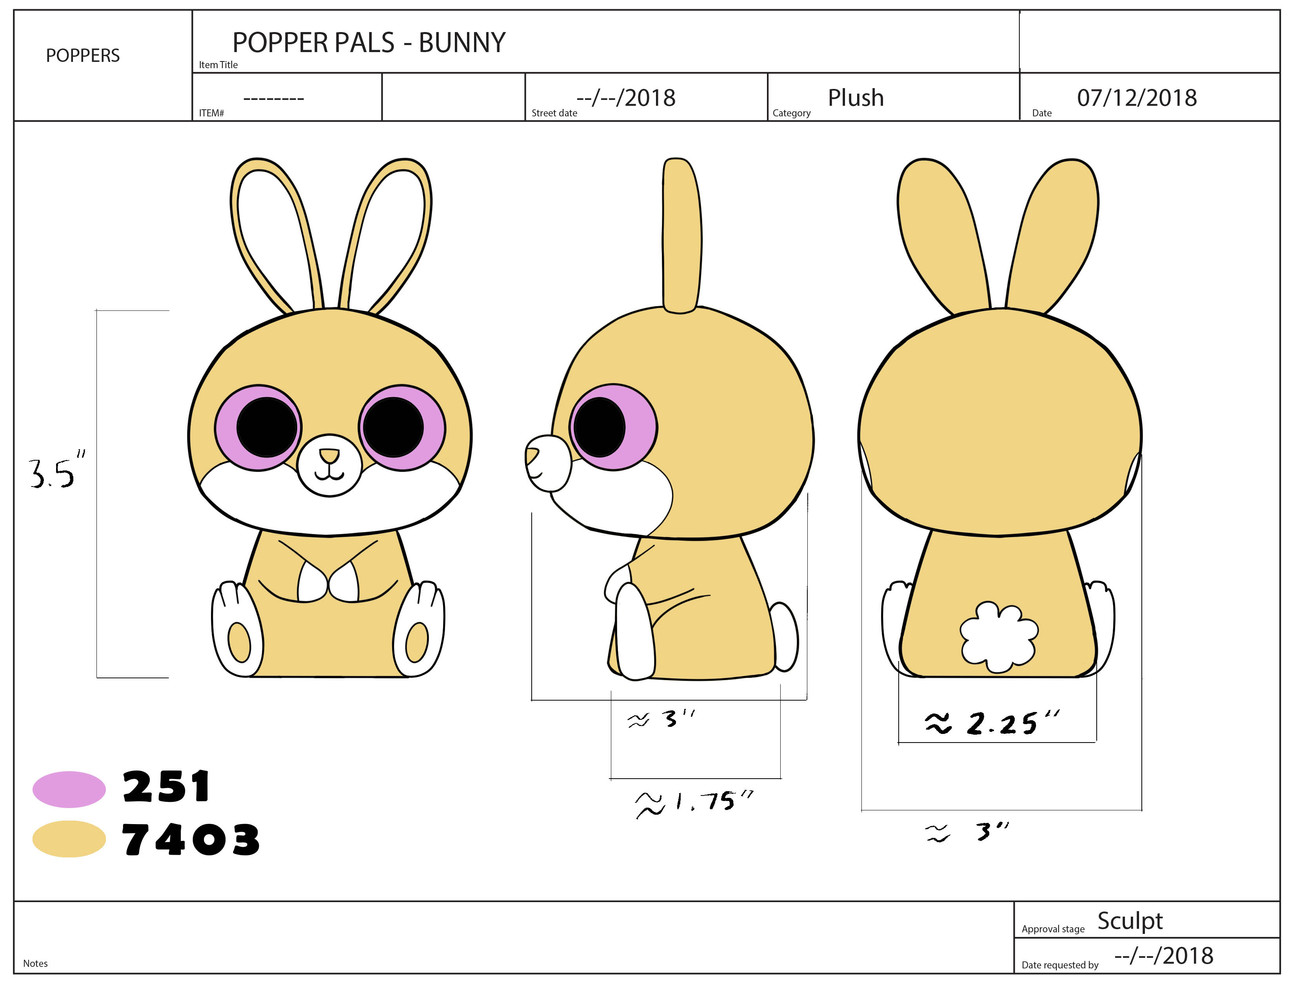 Popper Pals Bunny Product Sheet